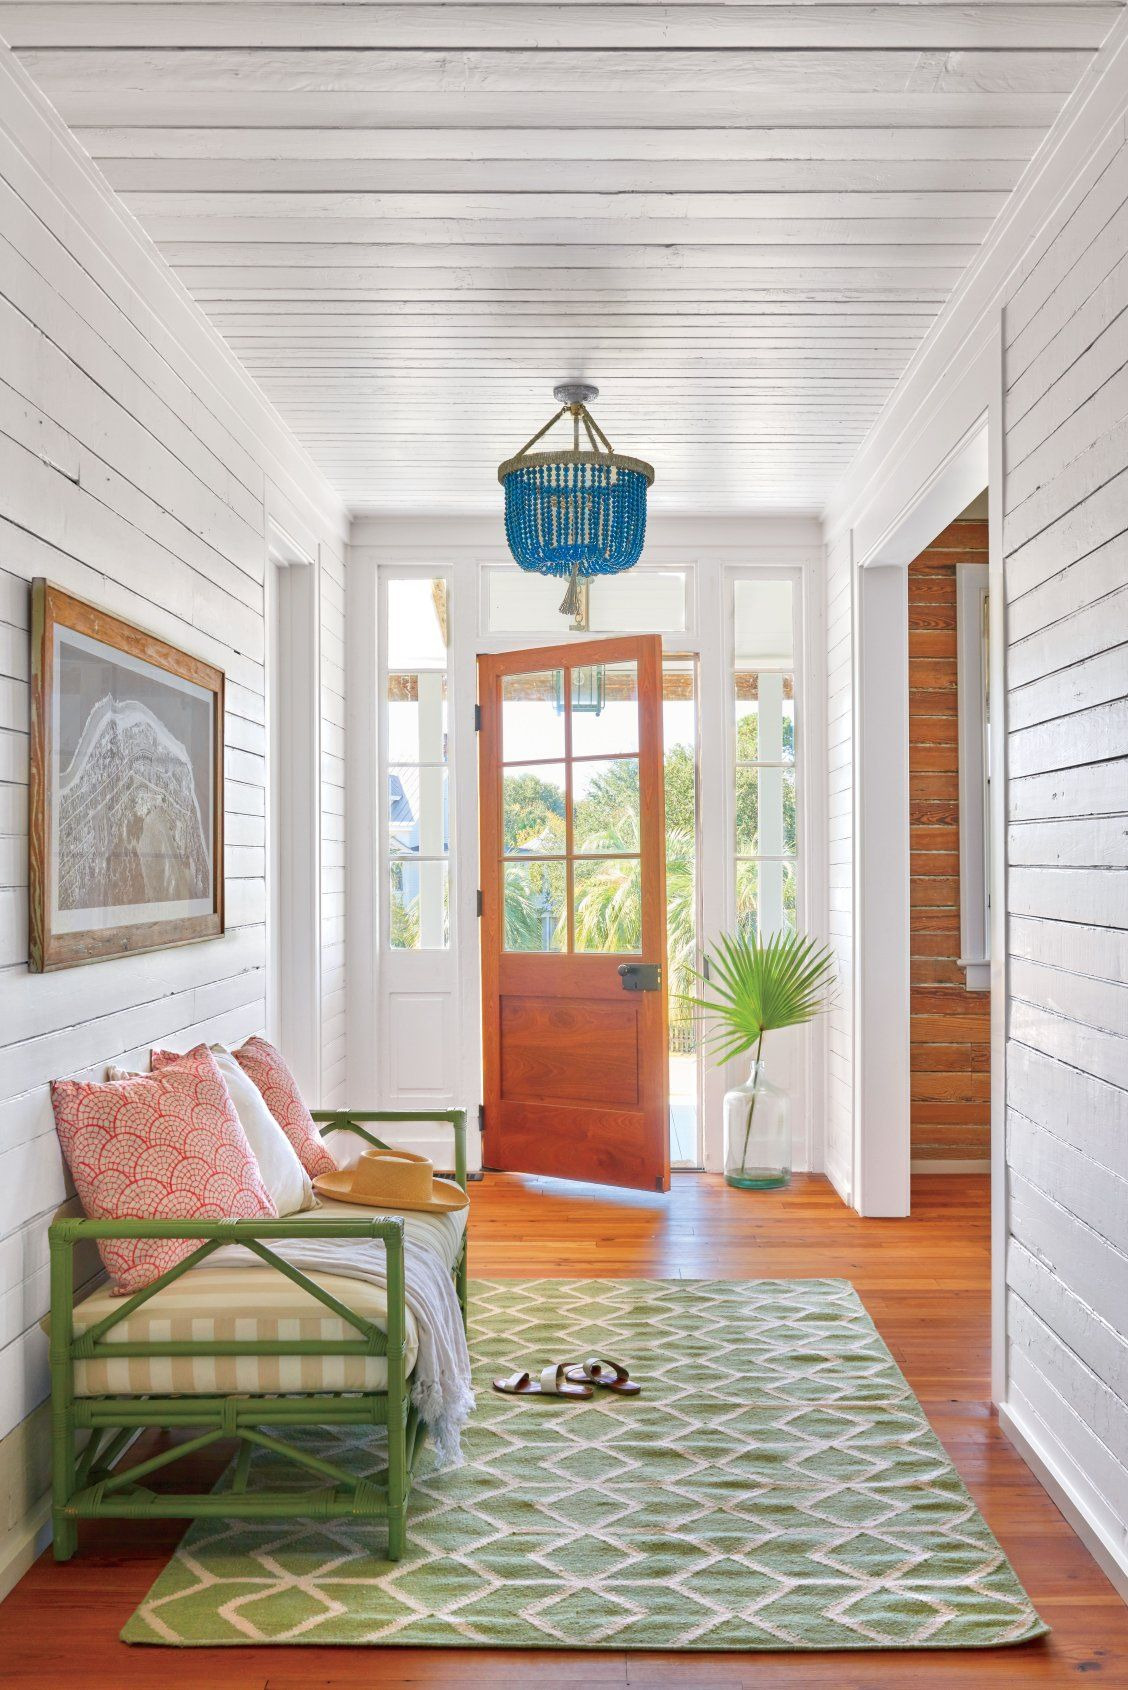 Low Country Beach House Plans Awesome Step Inside This Historic and thoughtfully Restored